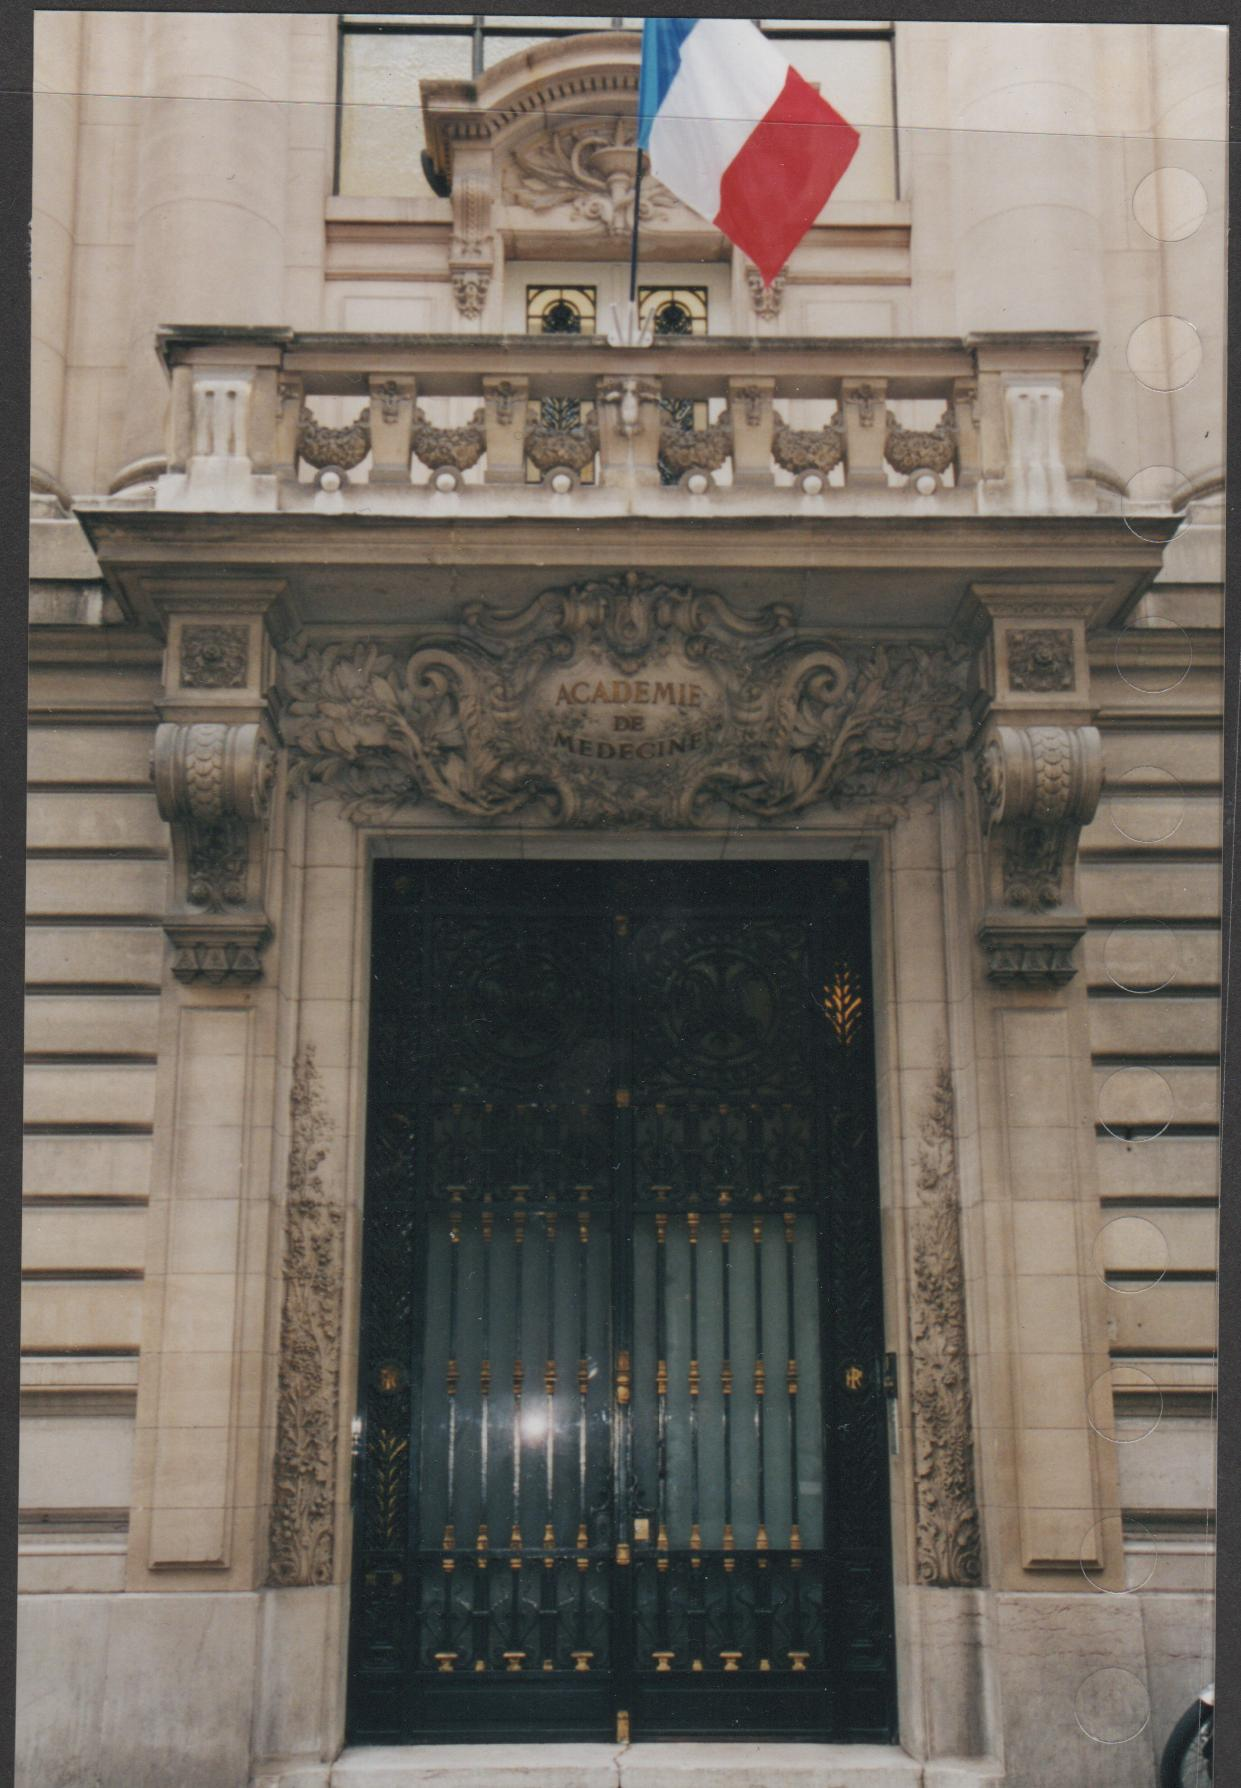 paris door, french flag, balcony over door